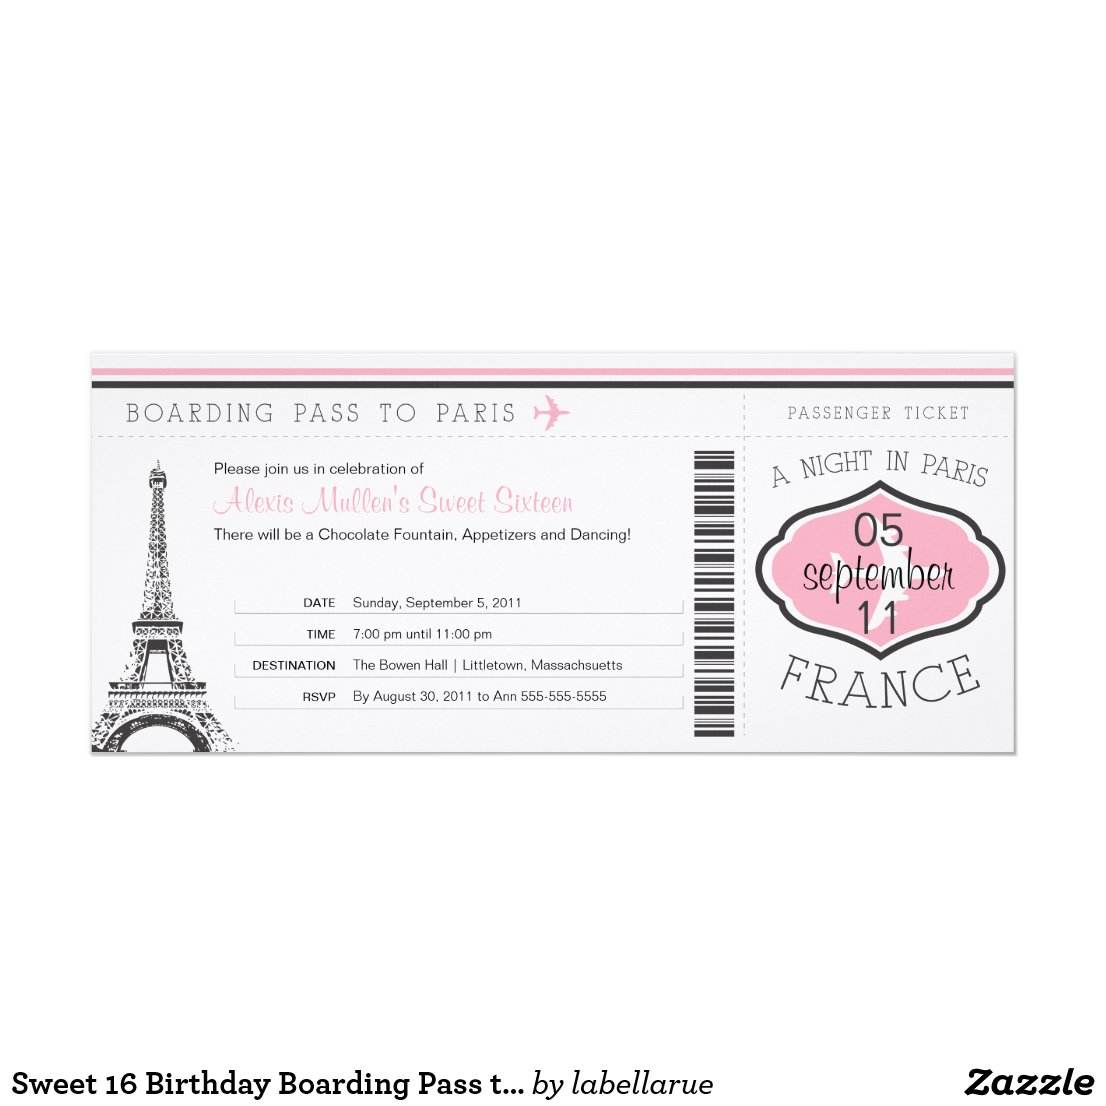 Sweet 16 Birthday Boarding Pass to Paris Invitation